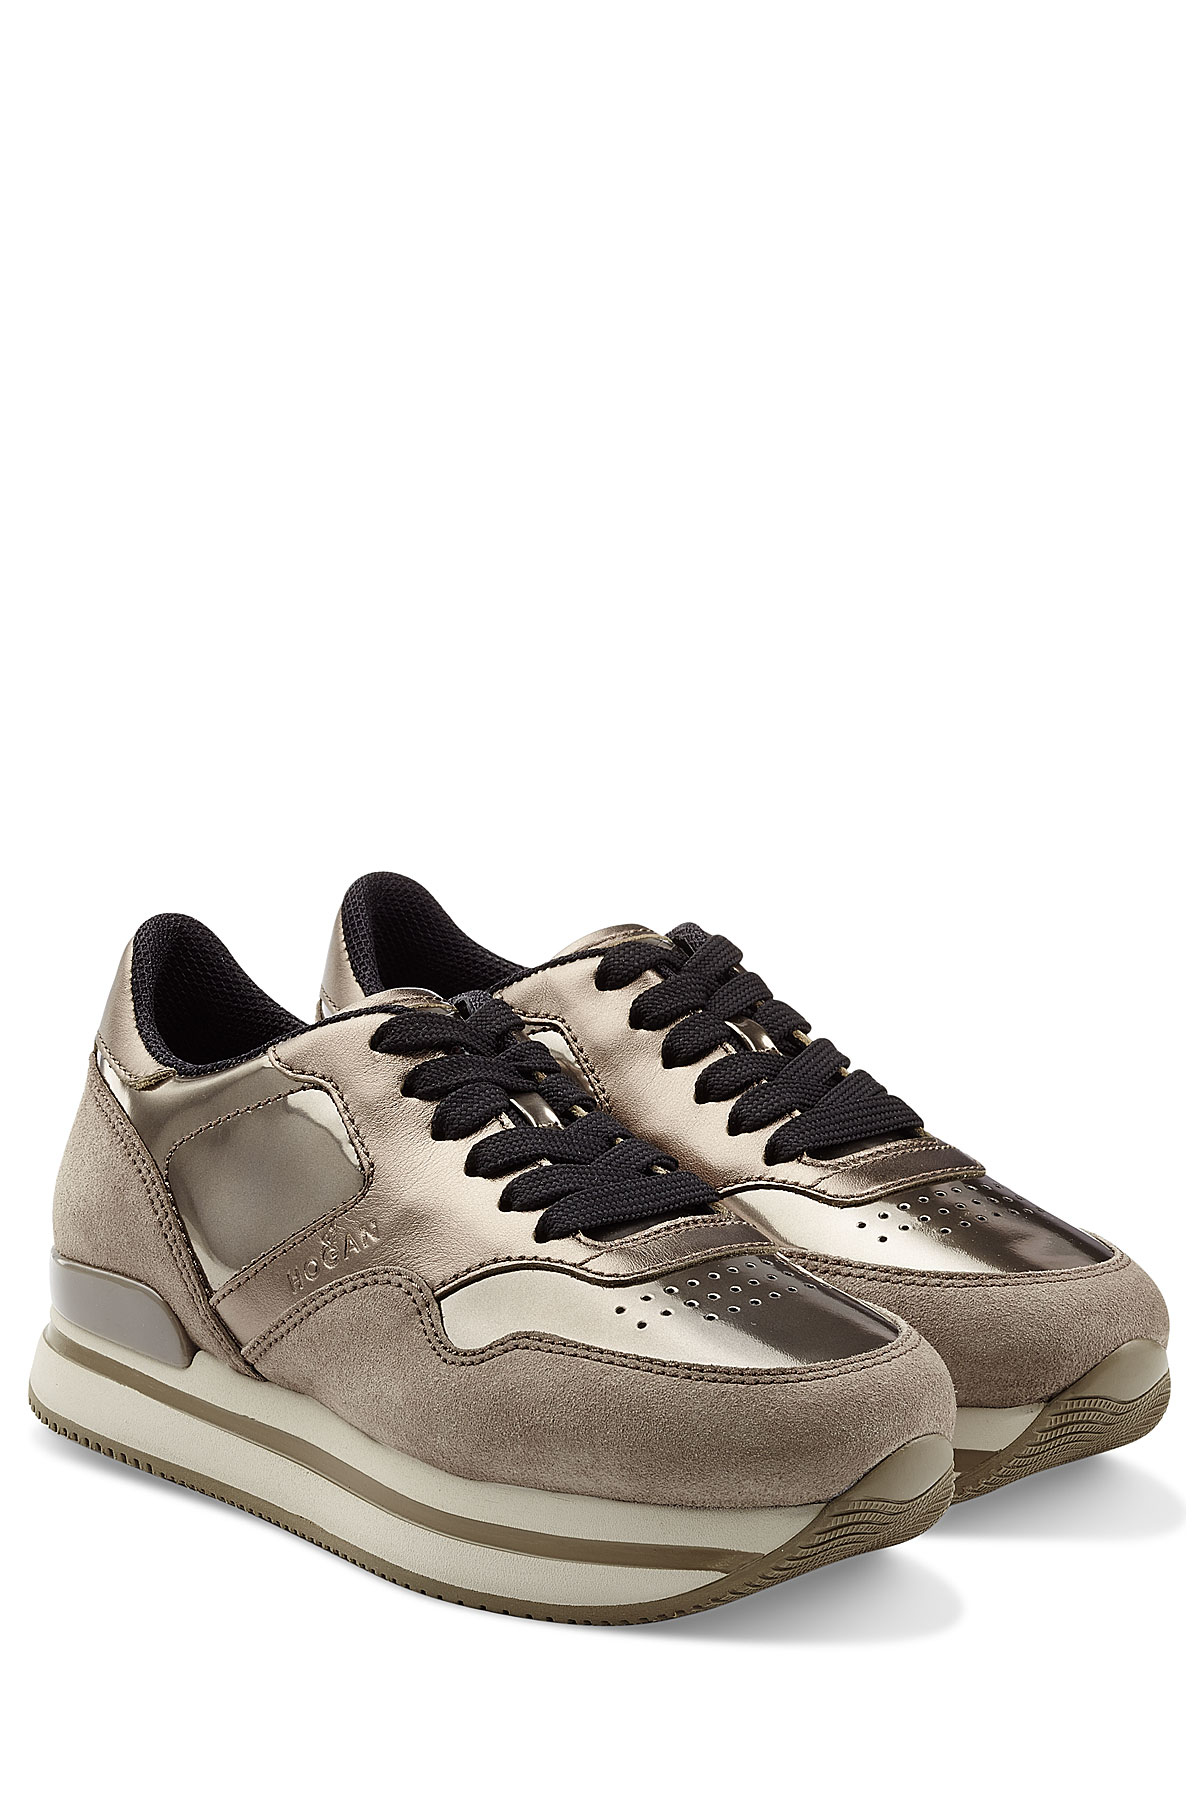 1467108d175fe Lyst - Hogan Lace Up Sneakers in Natural